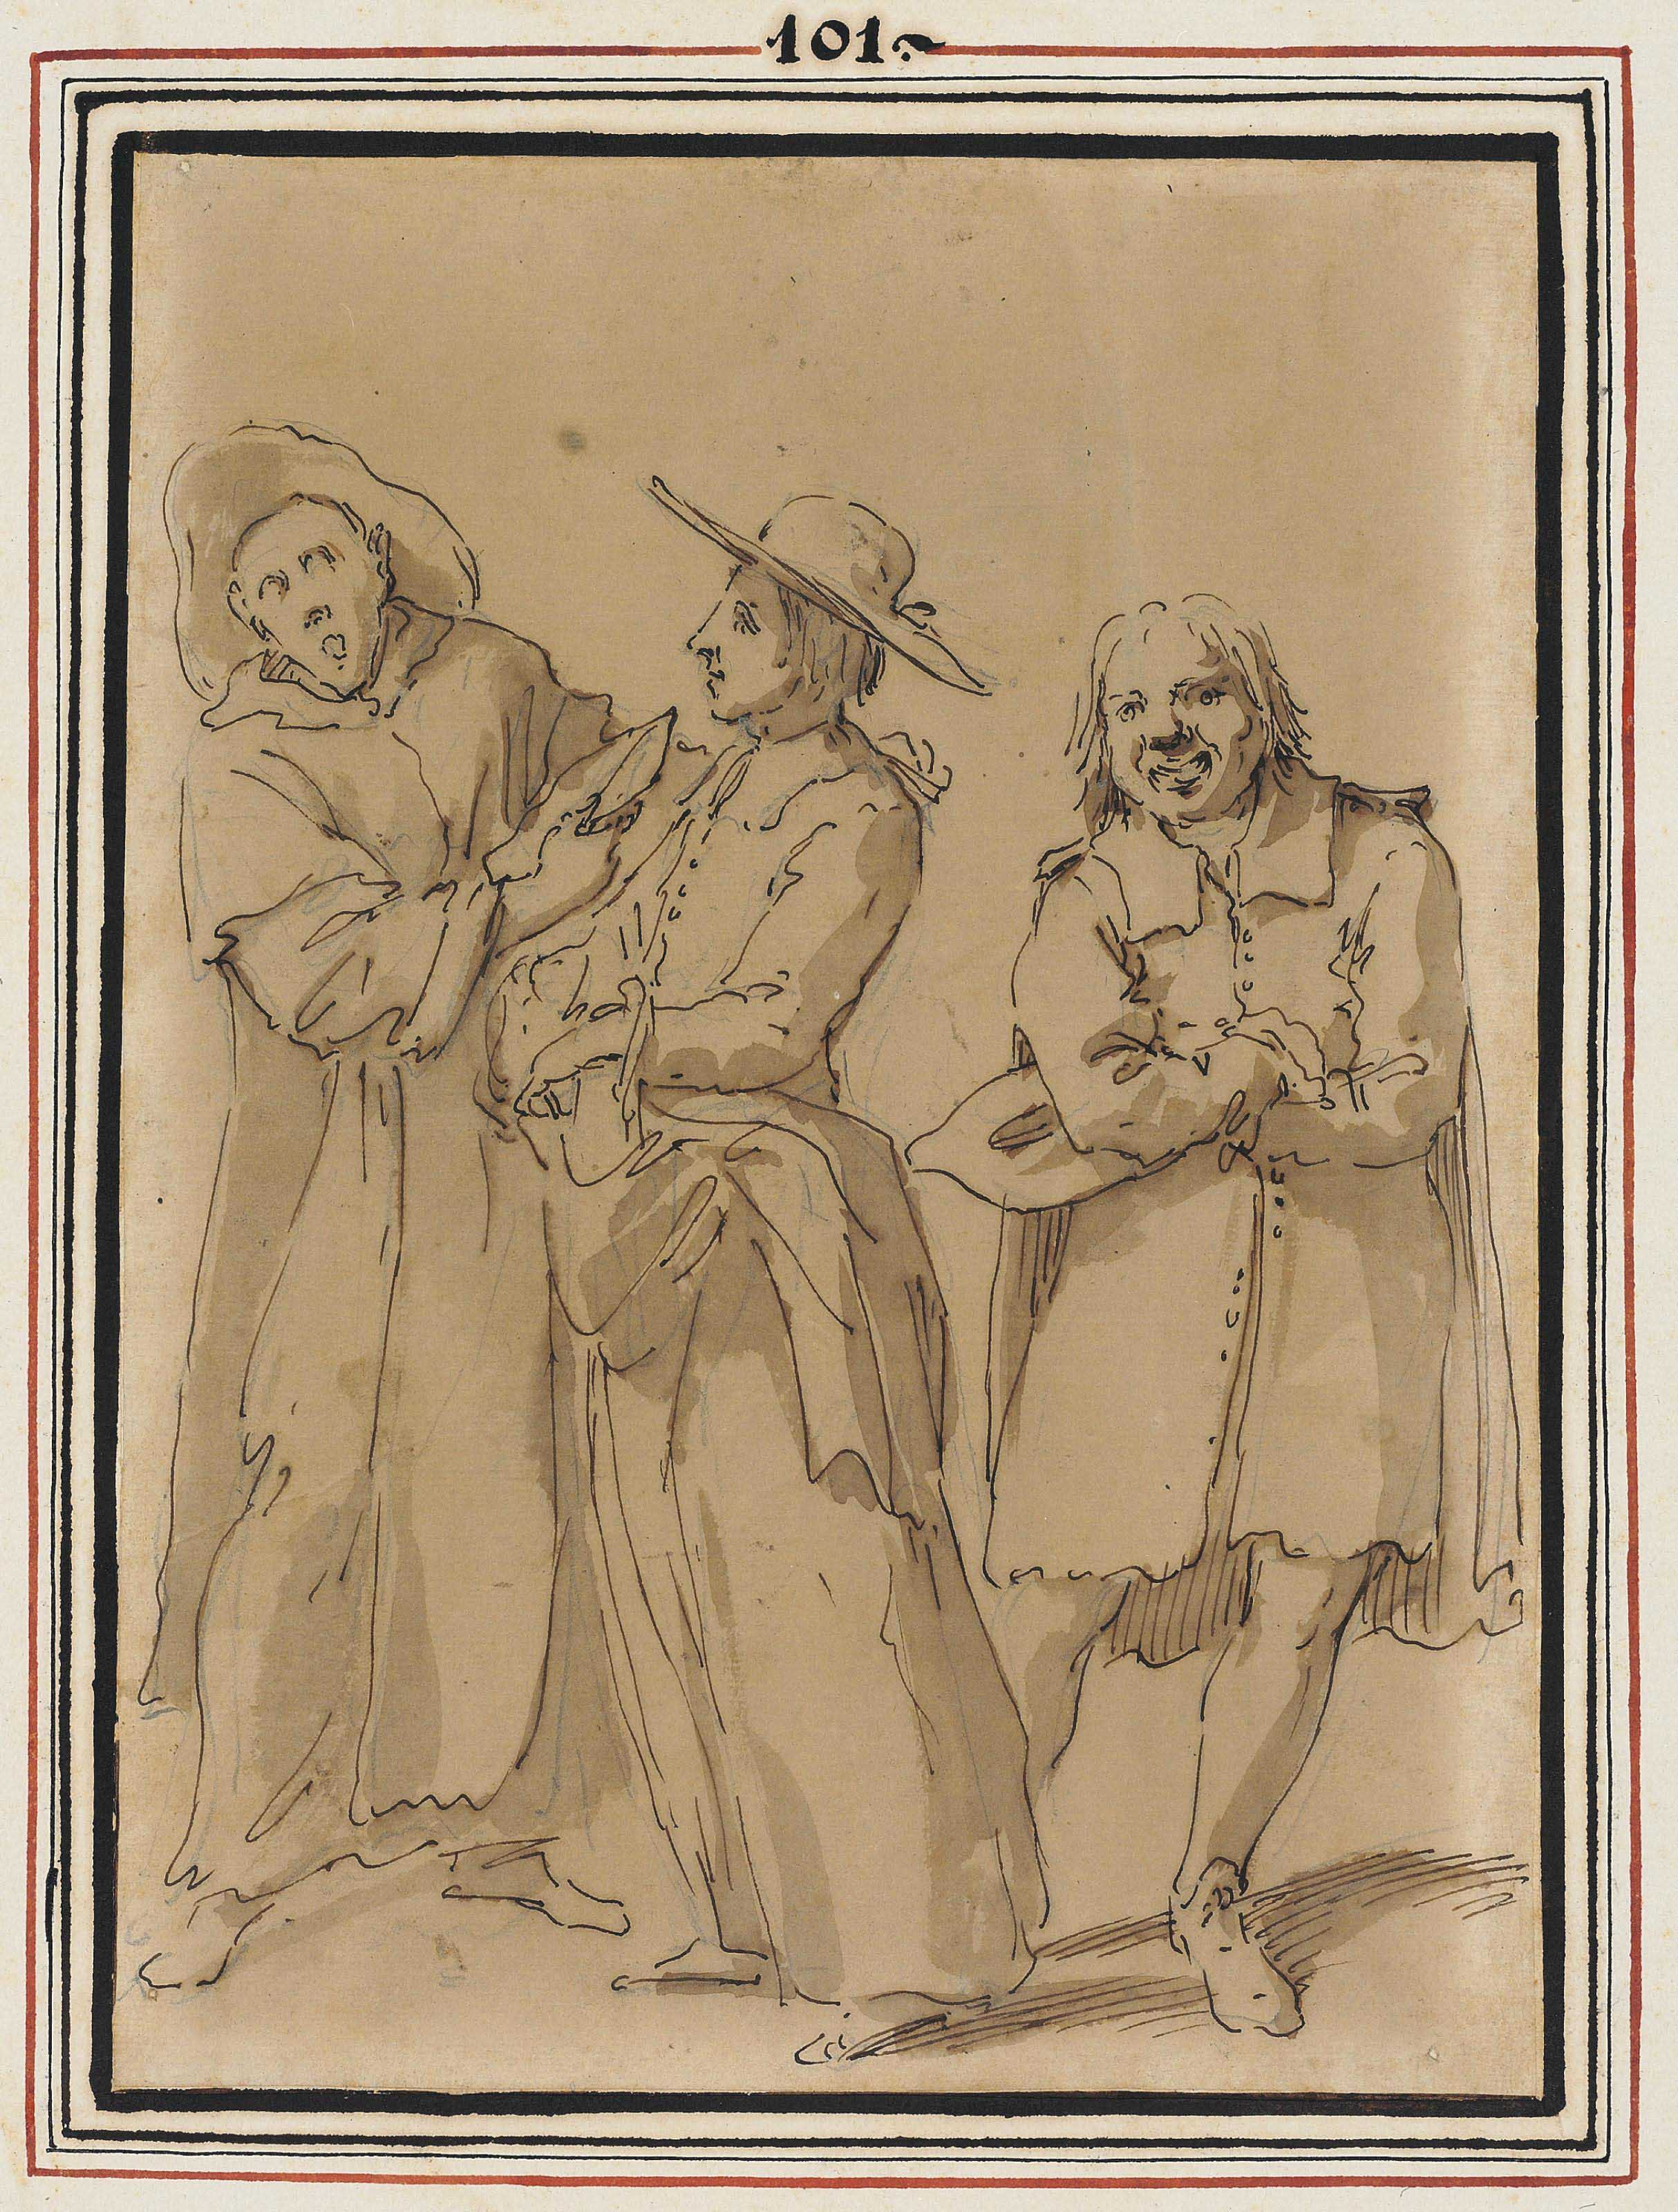 Caricature of two priests and an amused bystander